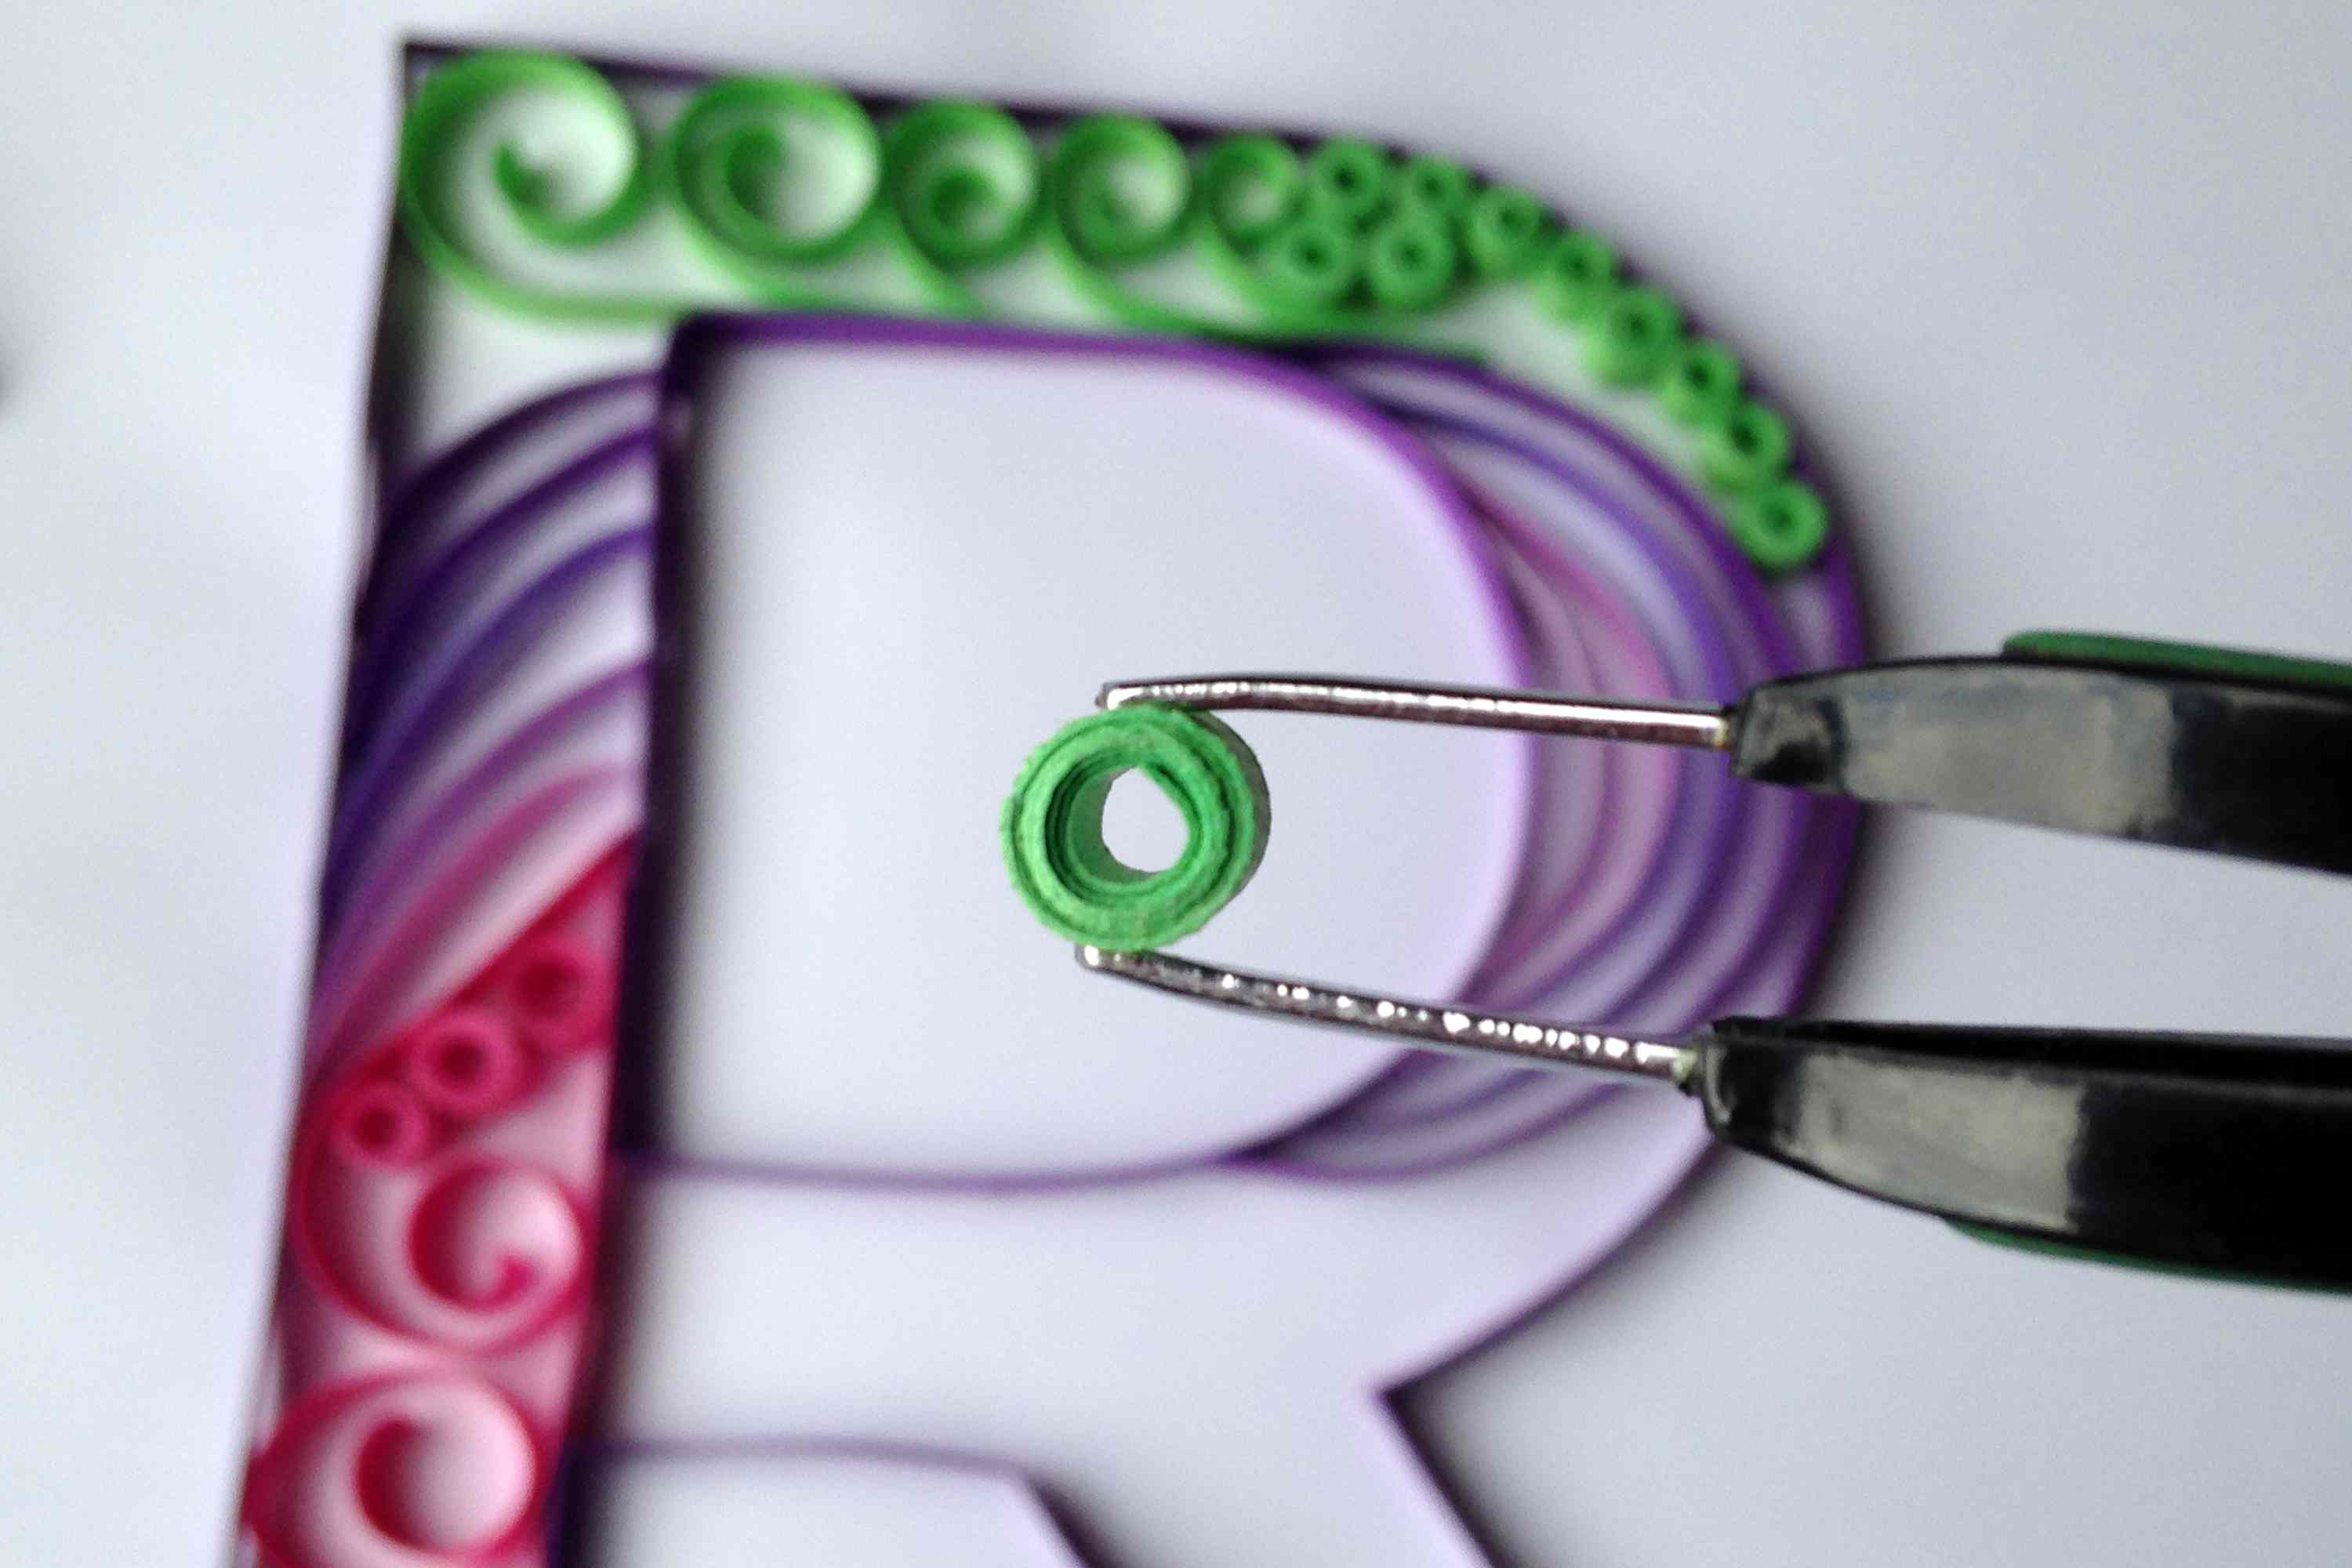 tweezers holding roll of quilled paper